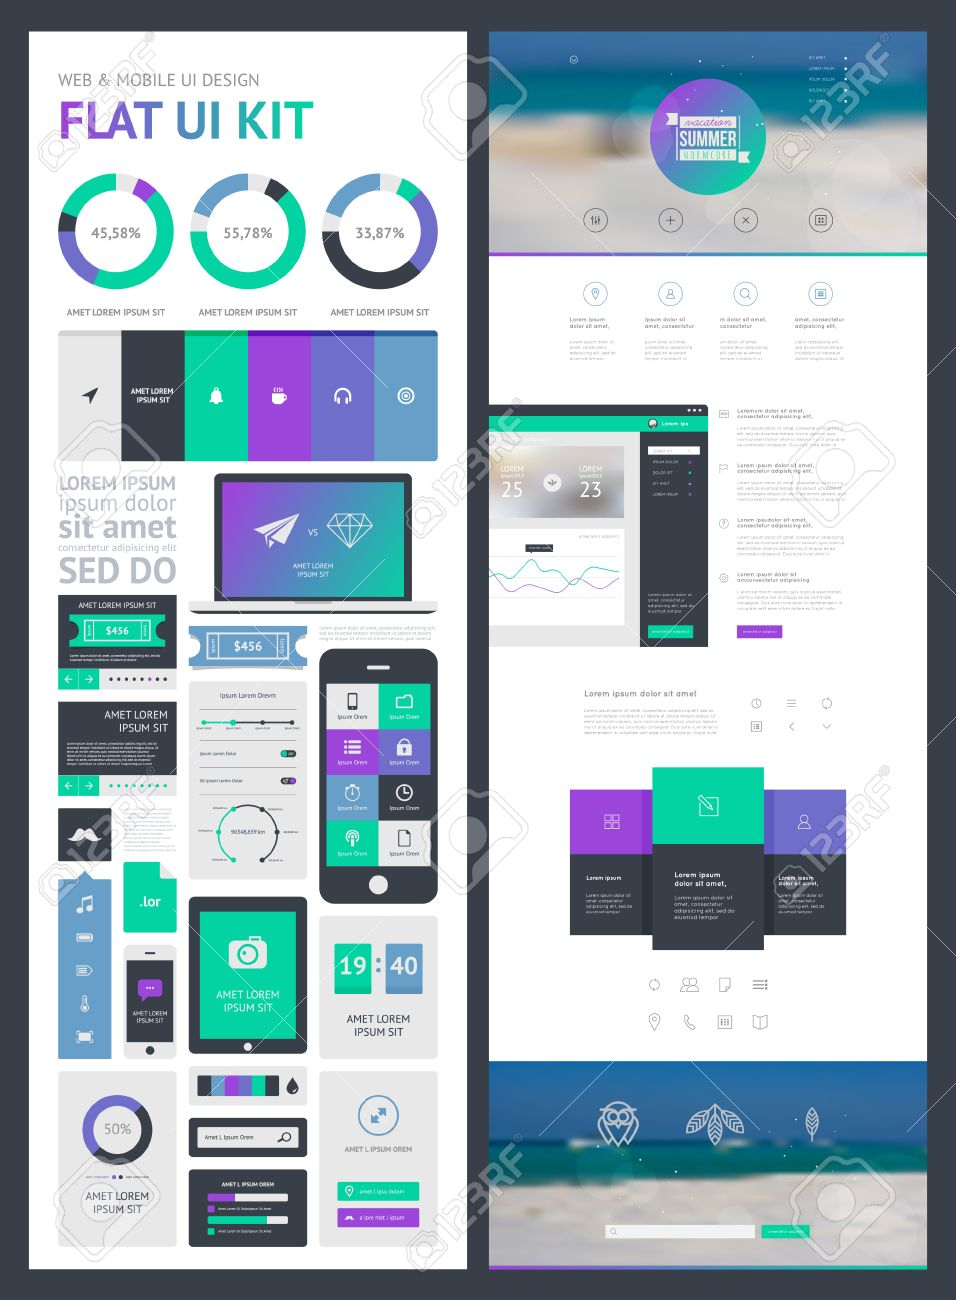 Flat Ui Kit For Web And Mobile Ui Design Page Website Design Royalty Free Cliparts Vectors And Stock Illustration Image 31463182